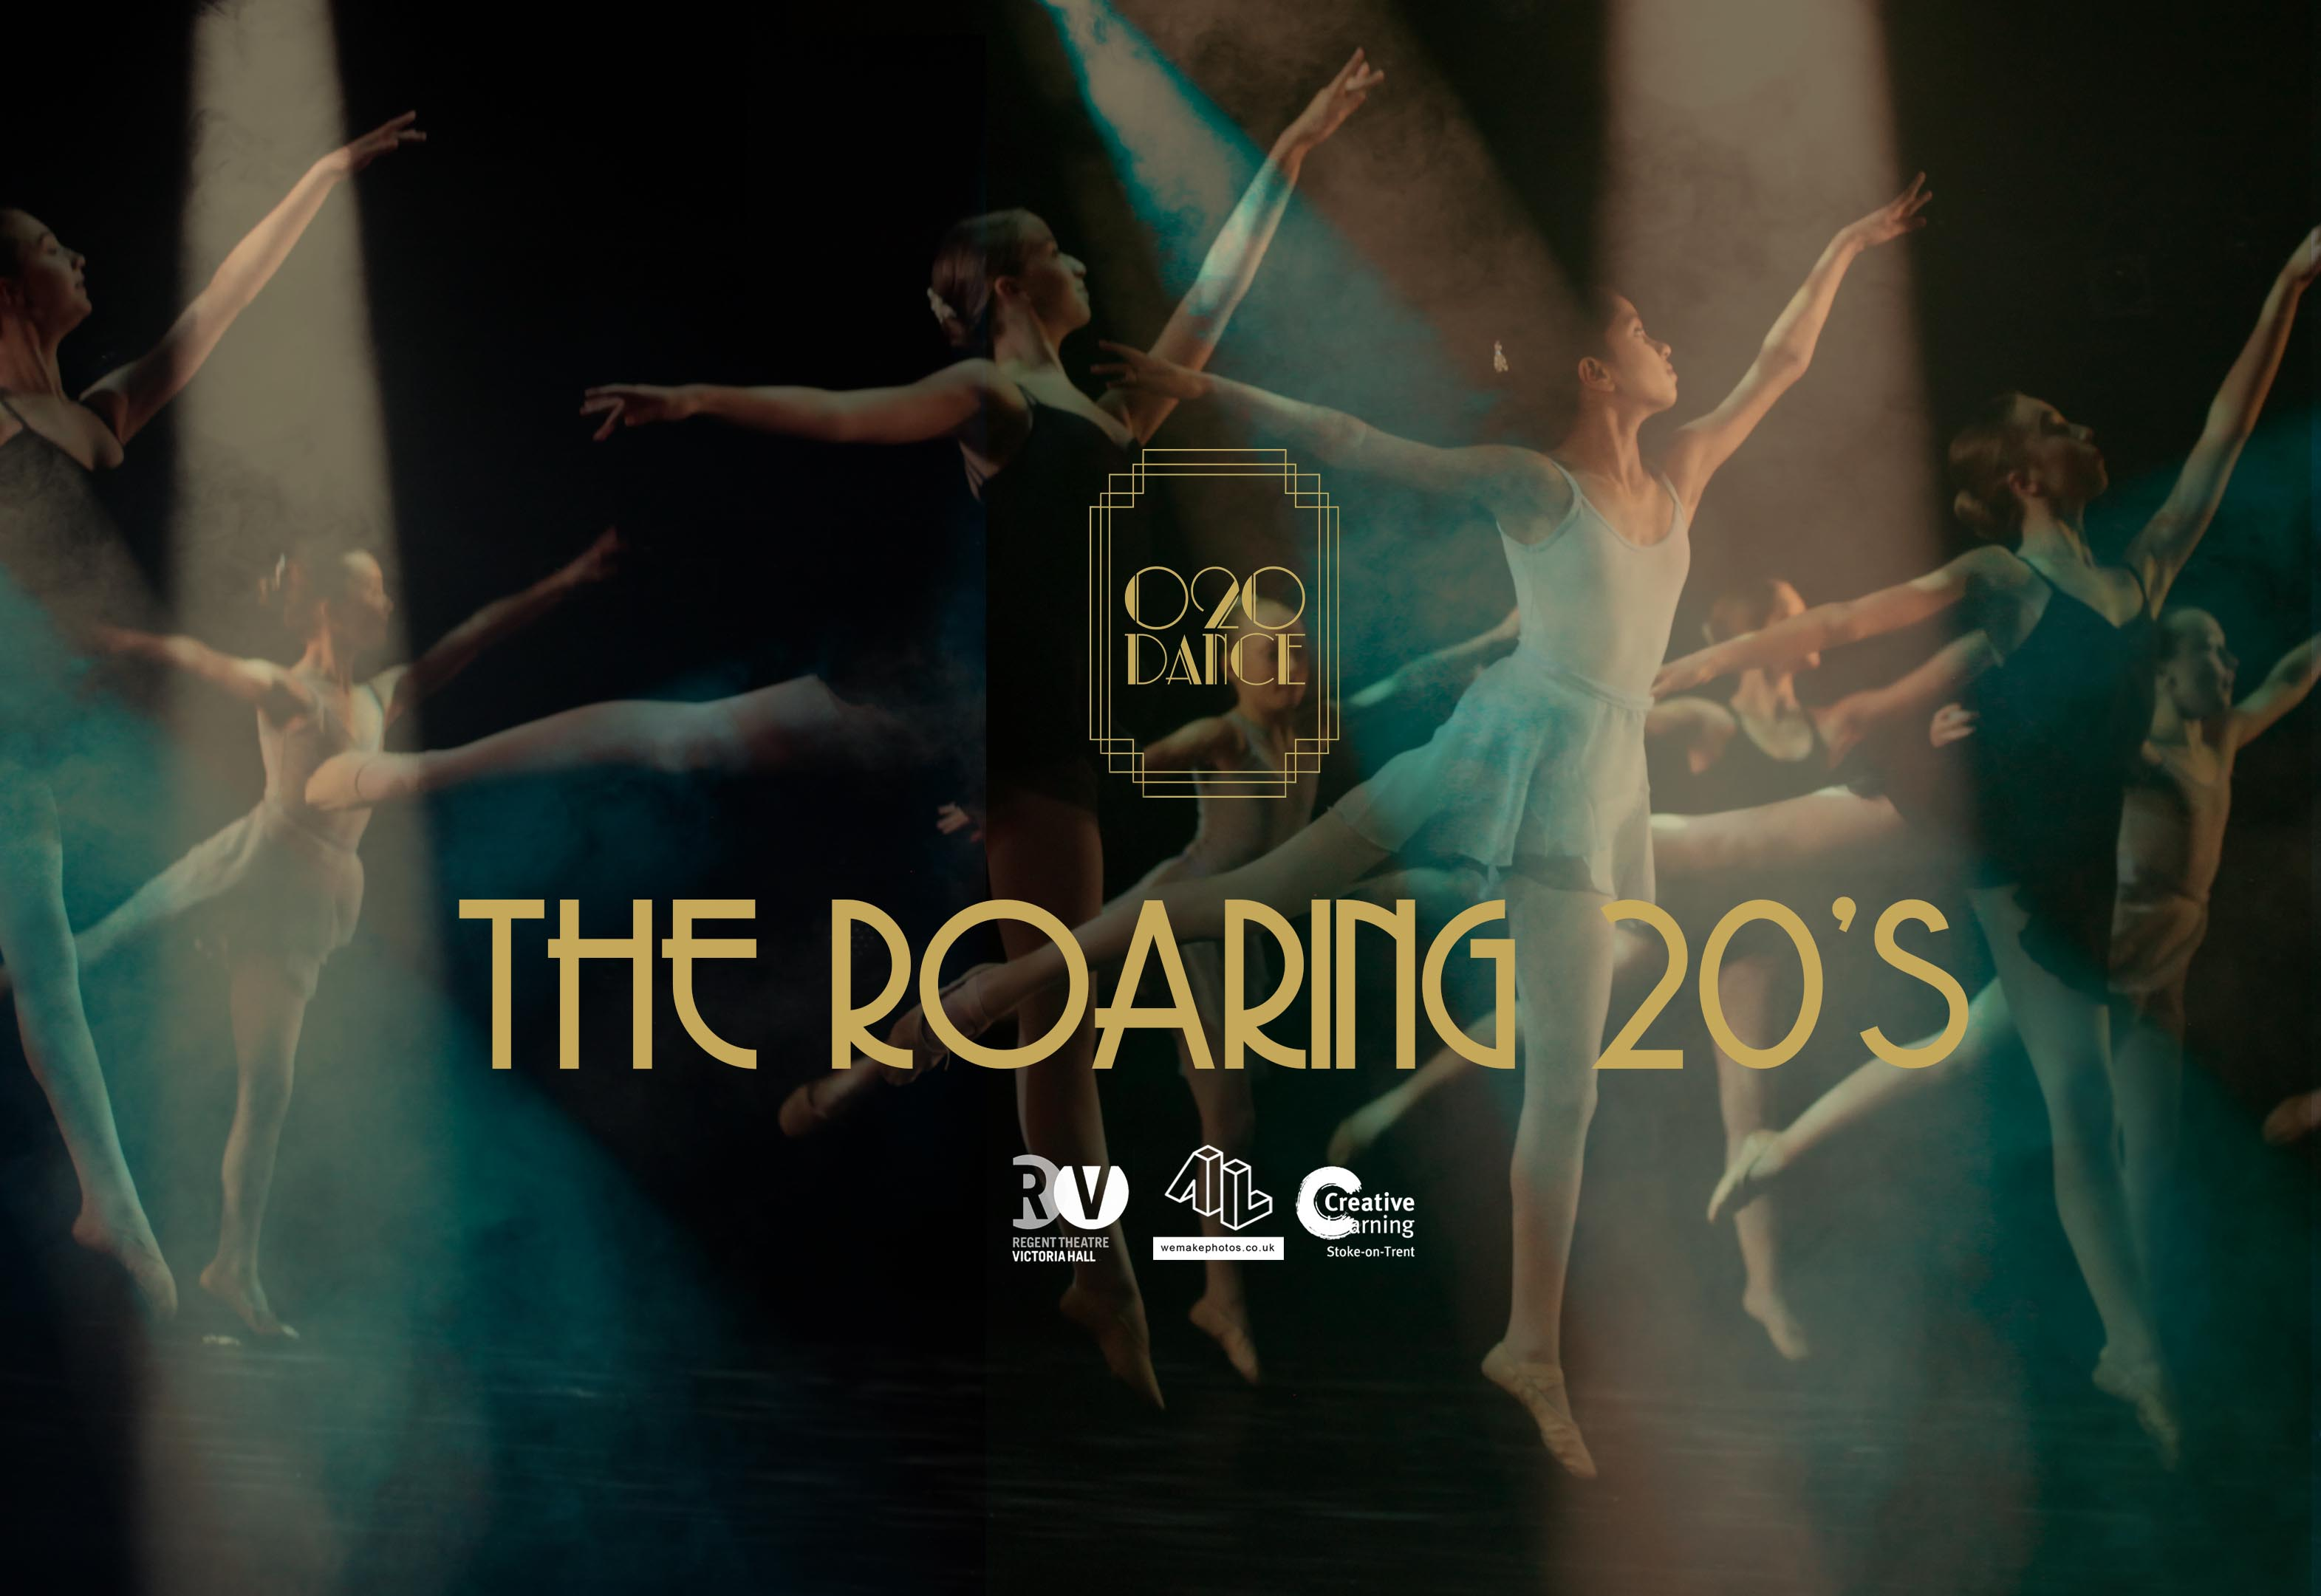 020 Dance – The Regent Theatre